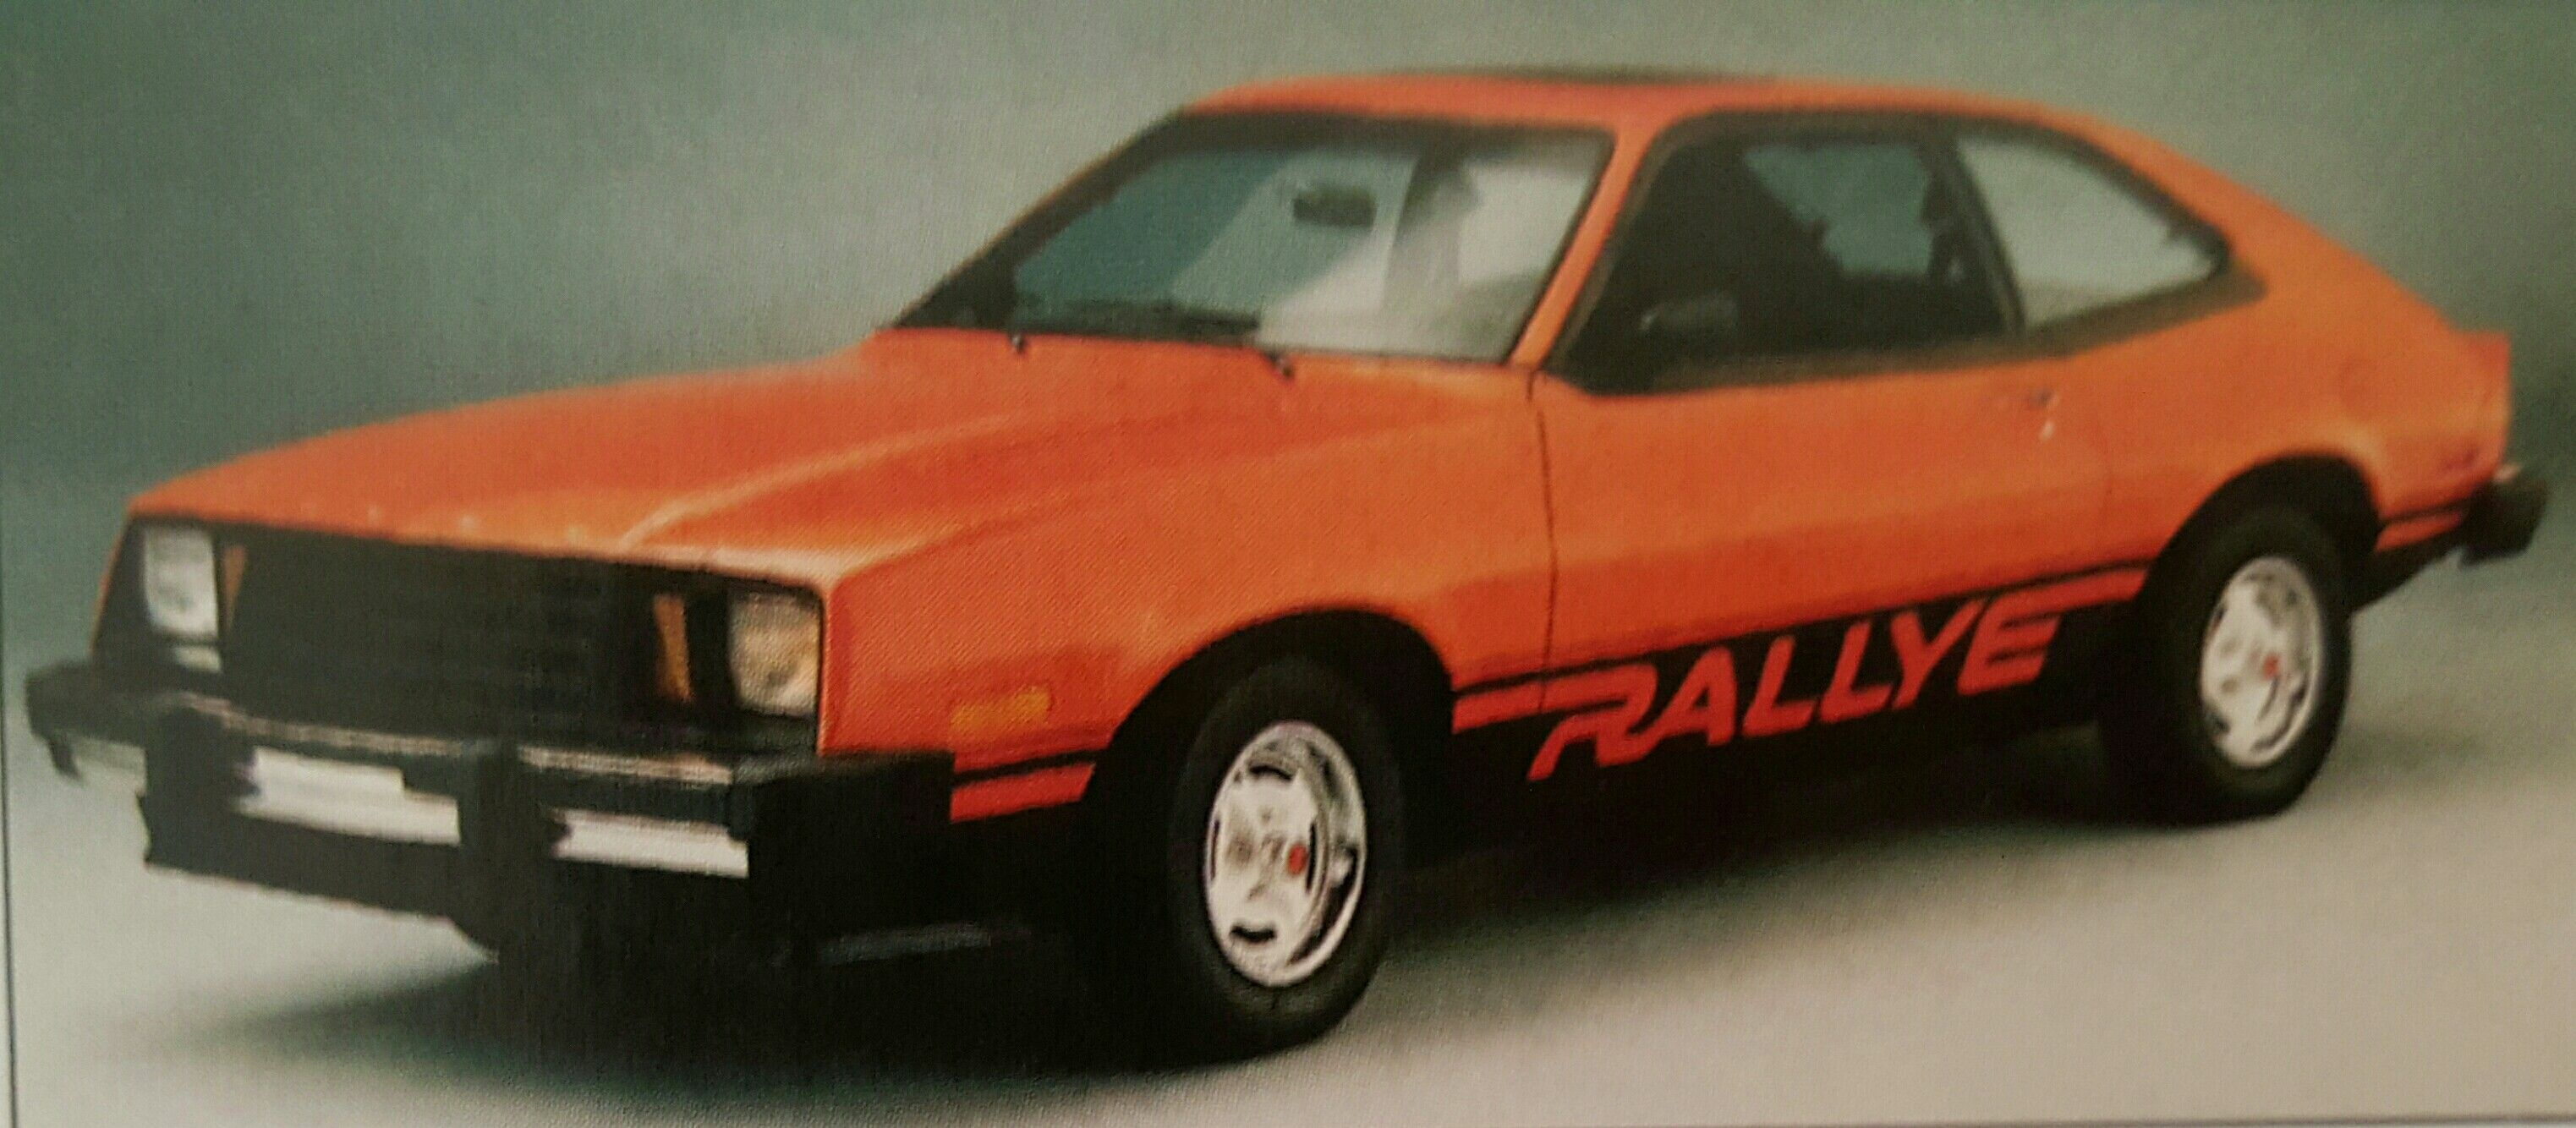 1979 Ford Pinto Rallye Driver Collectors Pinterest